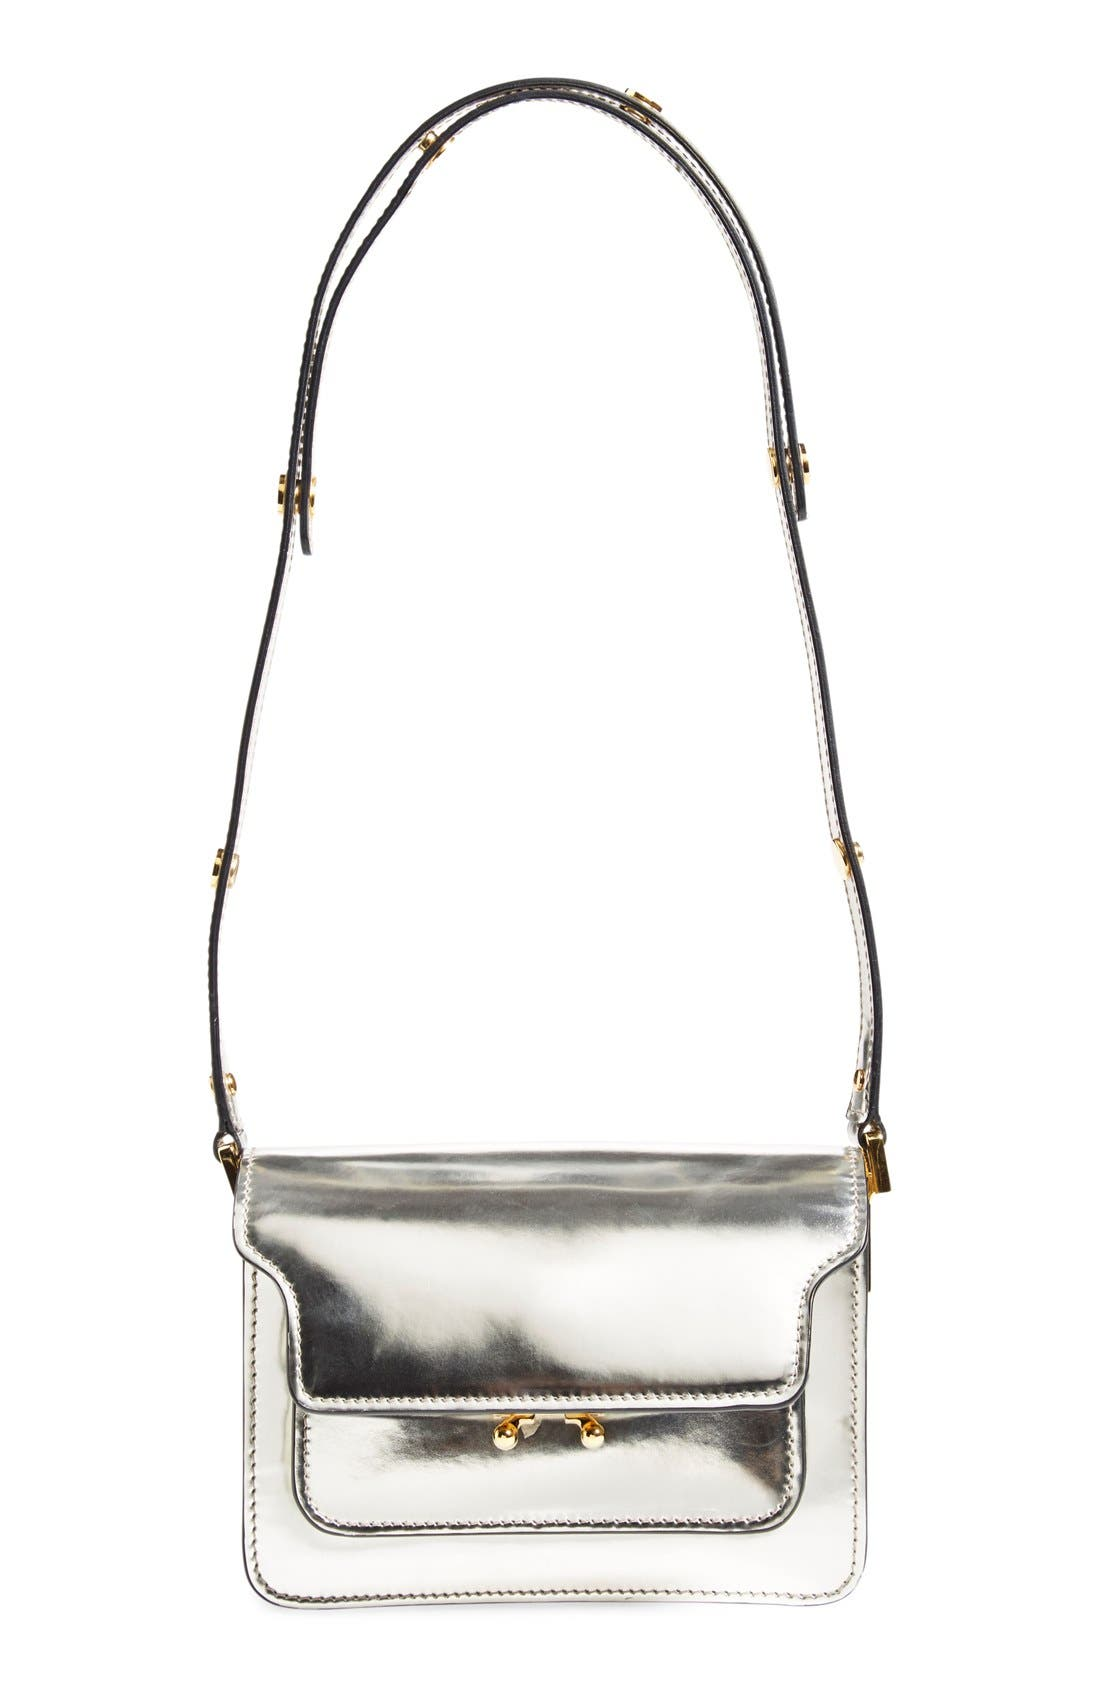 Alternate Image 1 Selected - Marni 'Mini Trunk' Metallic Leather Shoulder Bag